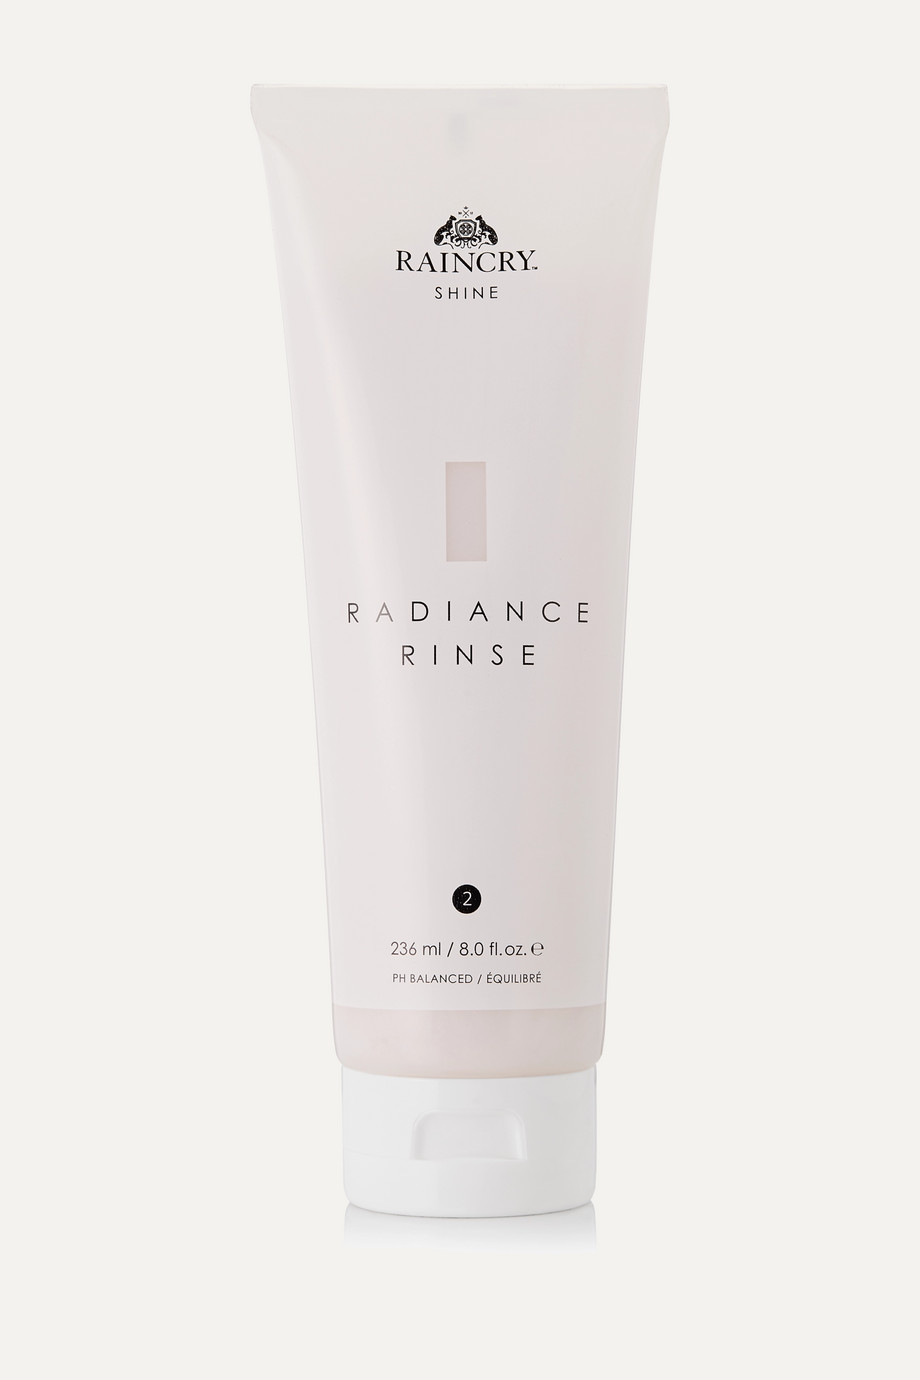 RAINCRY Radiance Rinse, 236ml